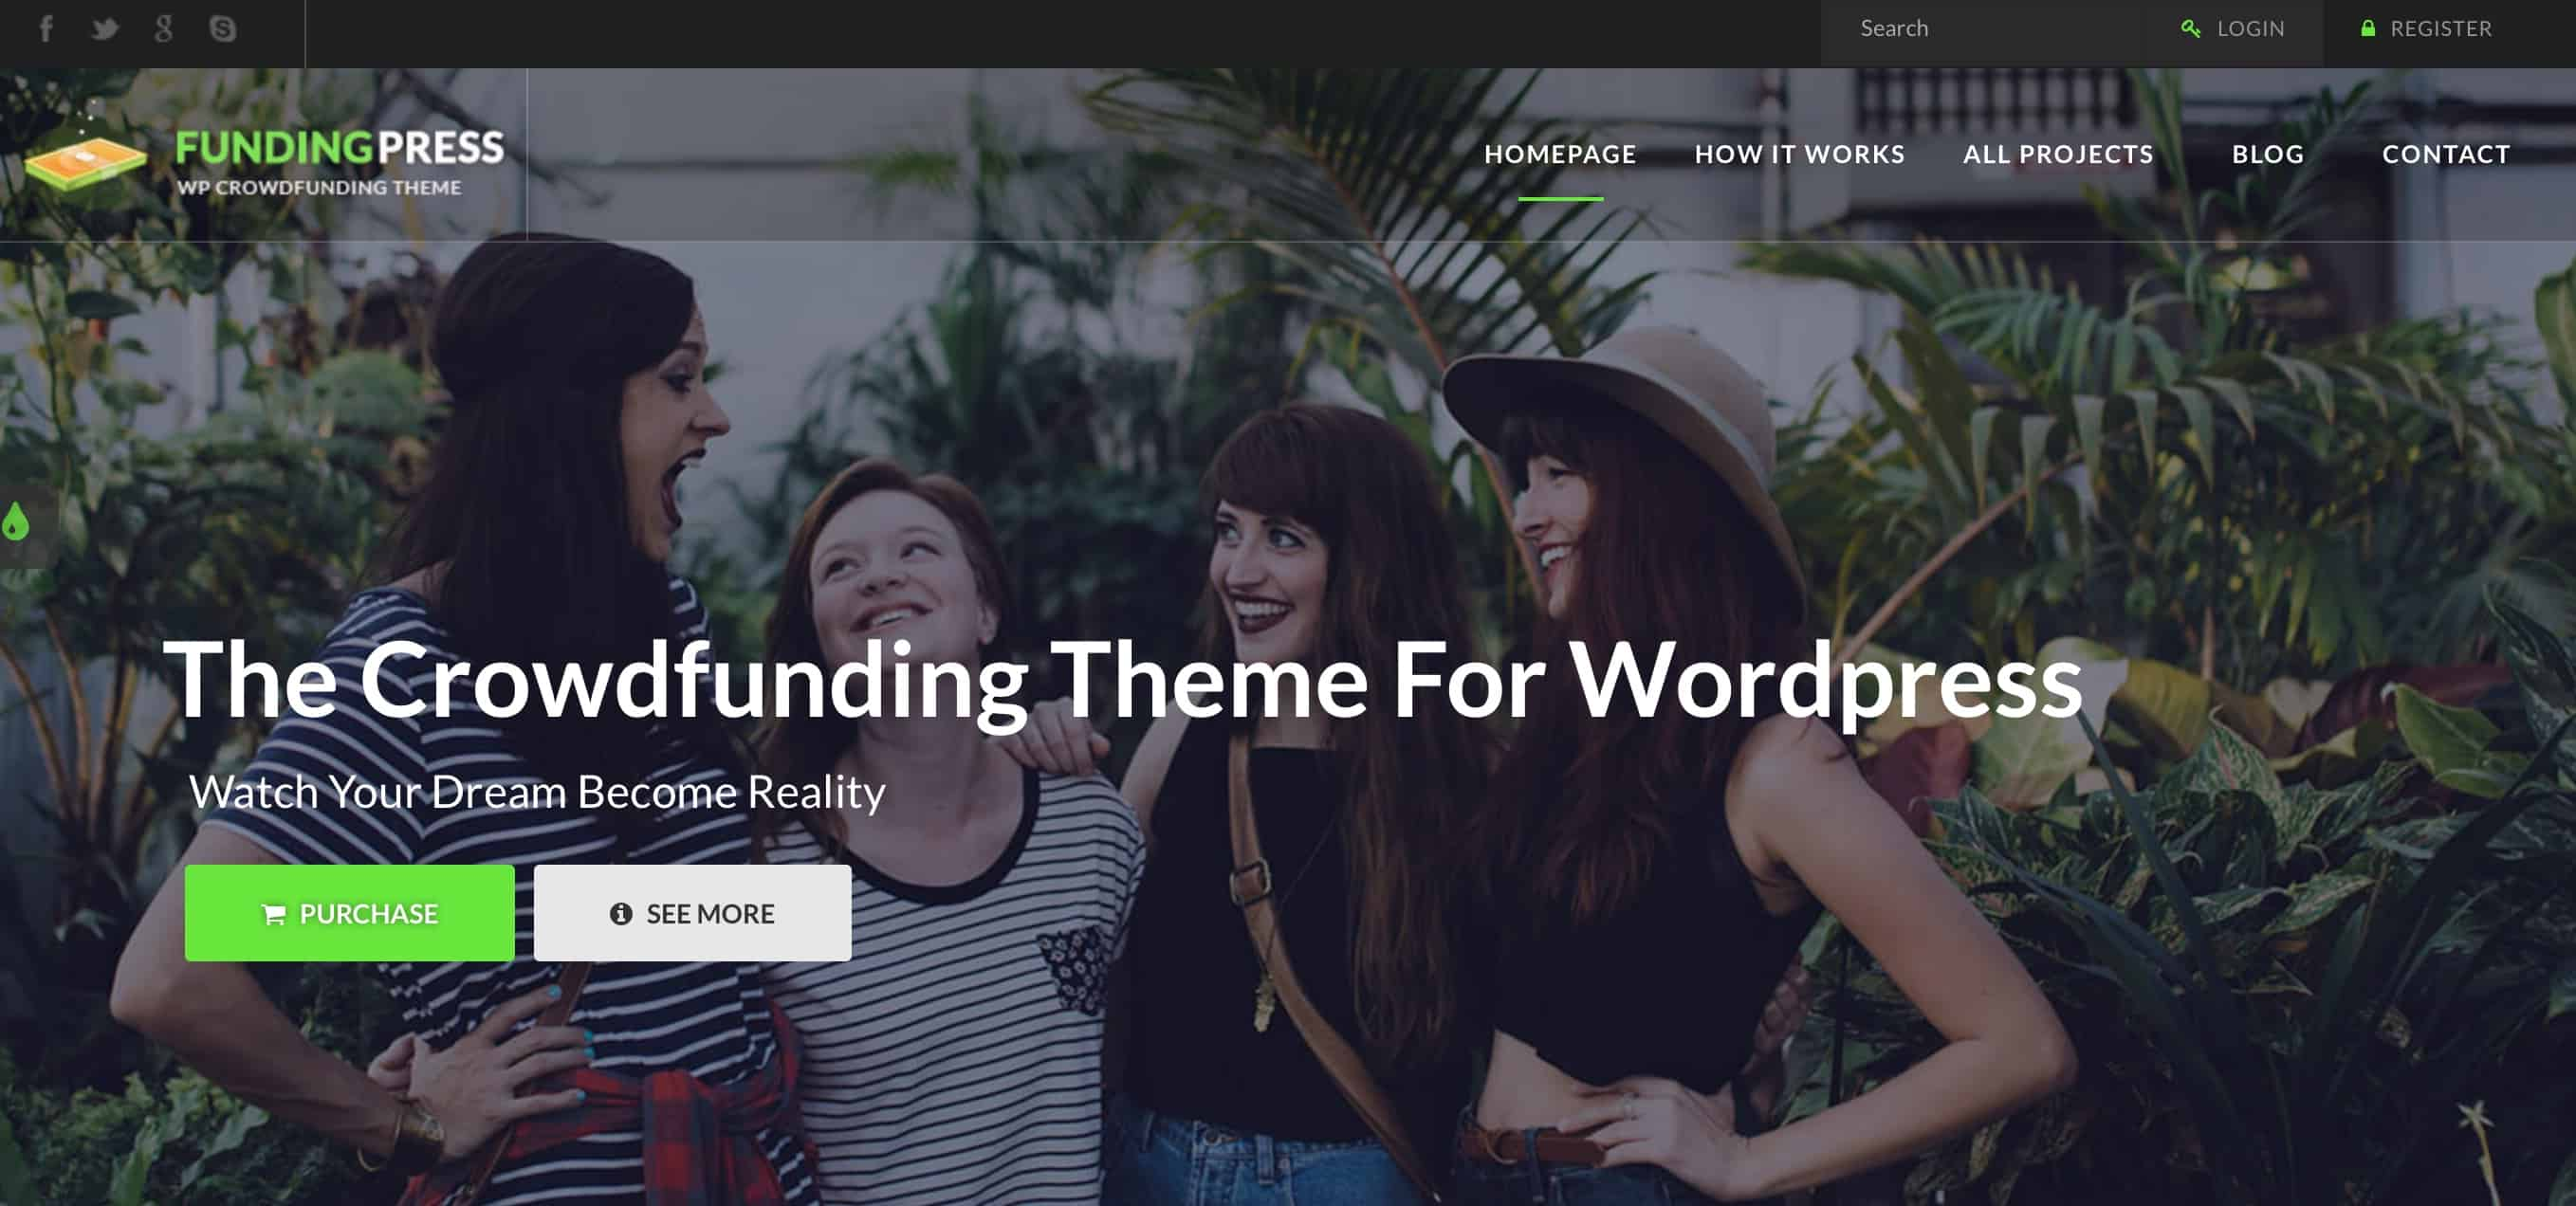 FundingPress WordPress Theme Kickstarter